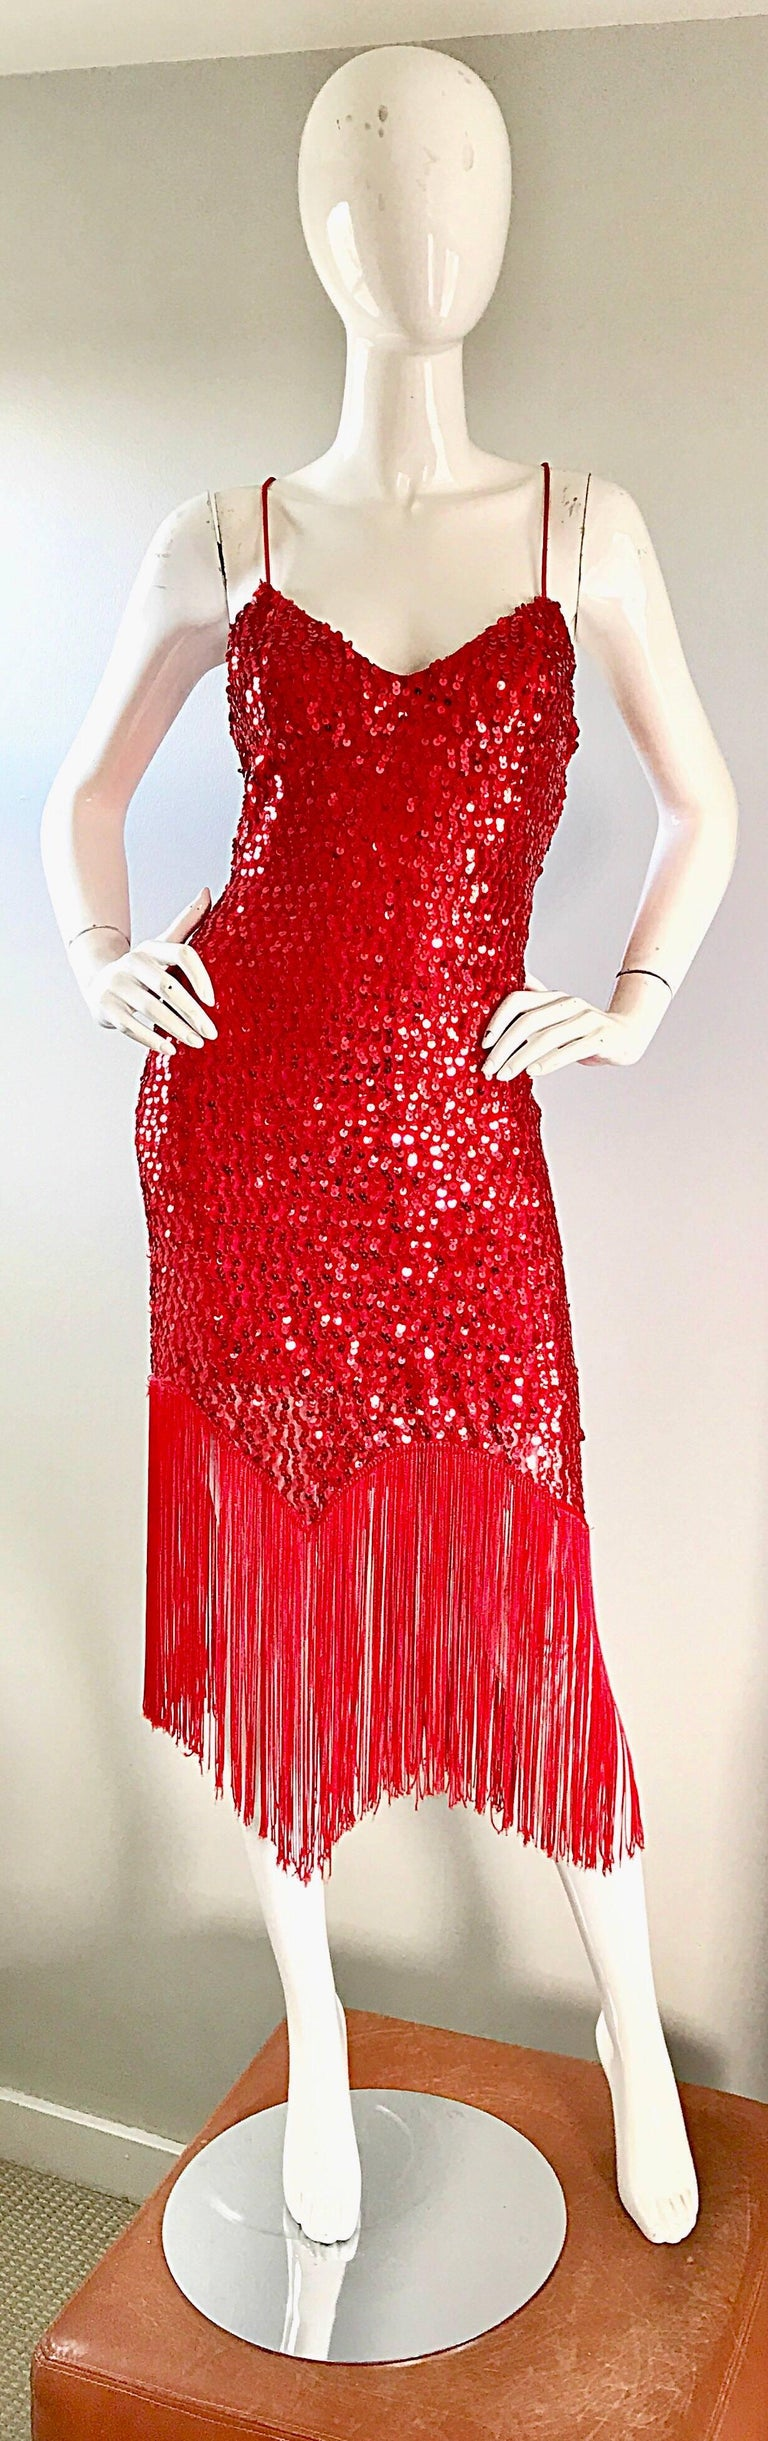 Fabulous 70s does 20s lipstick red fully sequined fringe hem sleeveless flapper dress! Features thousands of hand-sewn red sequins throughout. Asymmetrical handkerchief fringed hem. Fully lined. Hidden zipper up the side. Looks great alone or